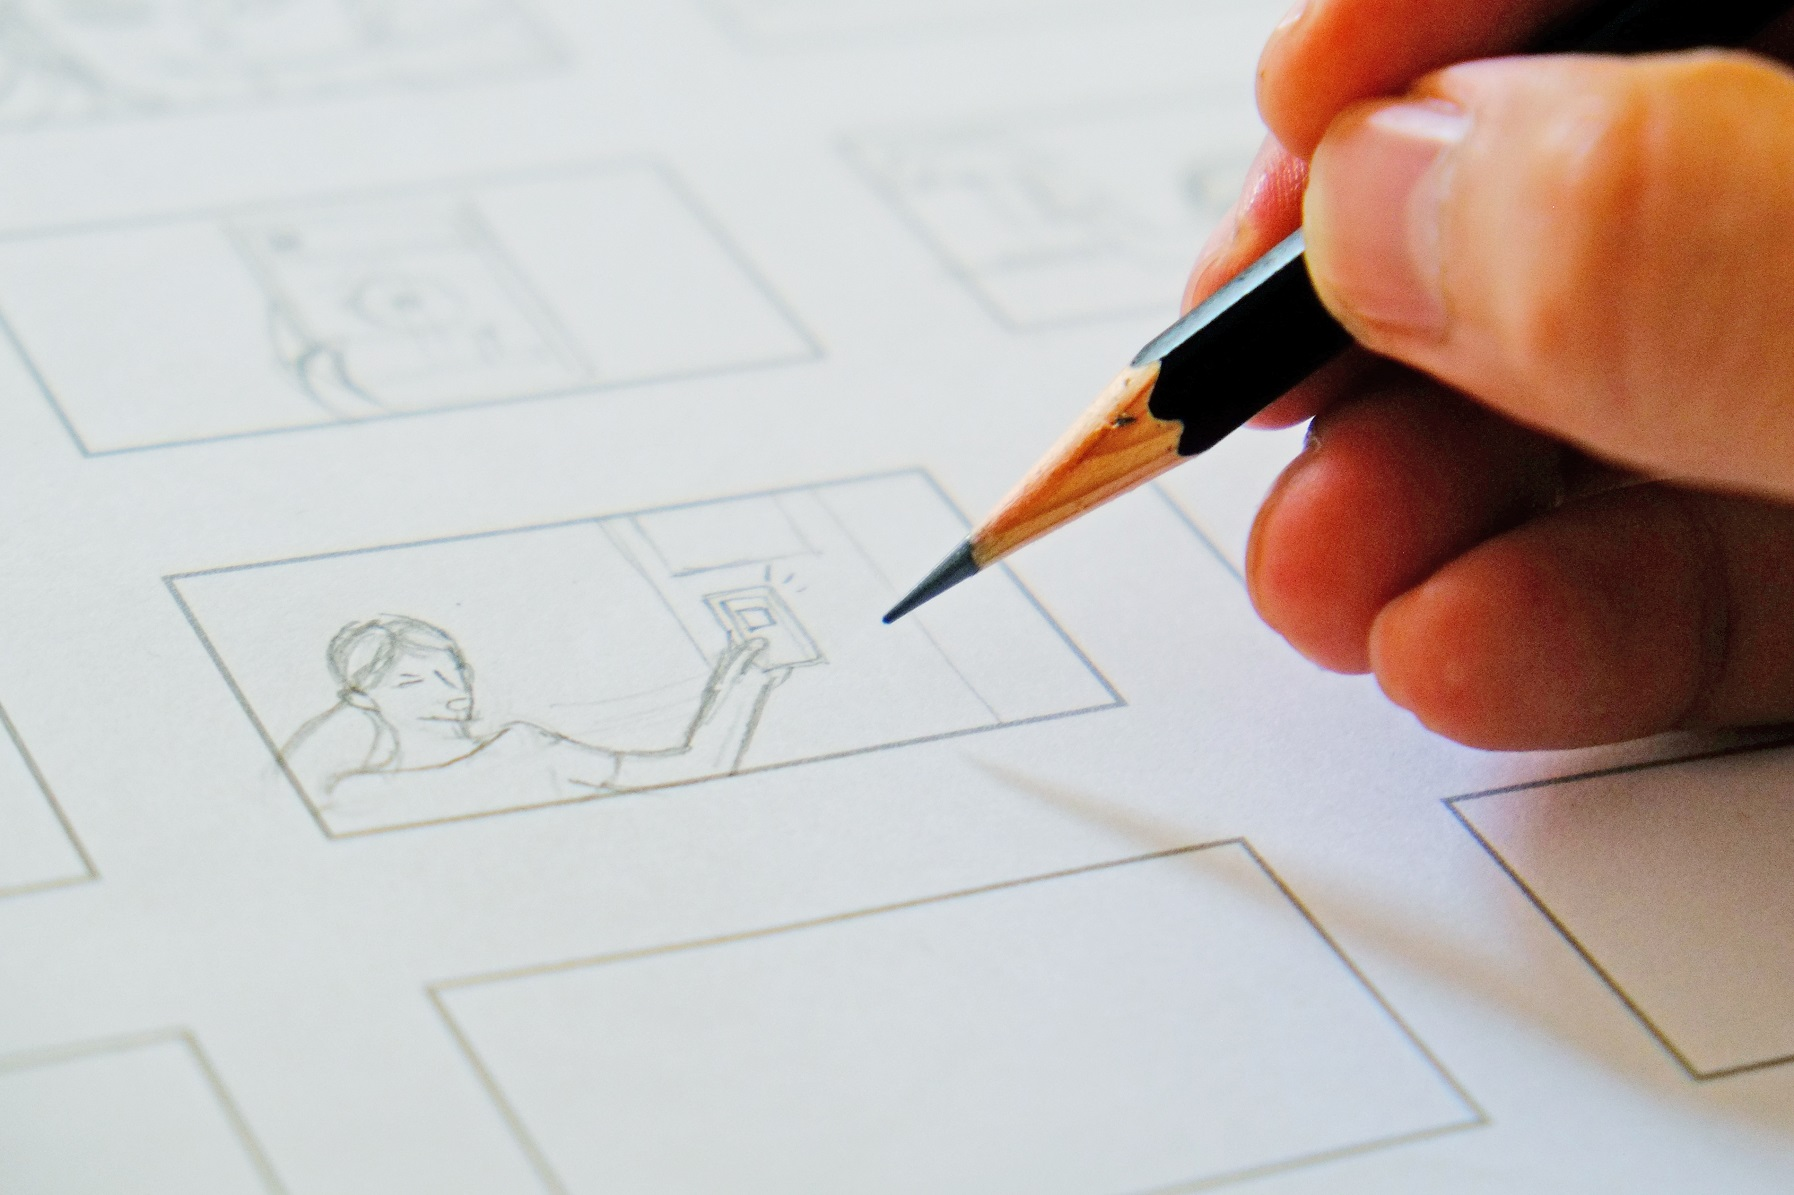 A storyboard under process